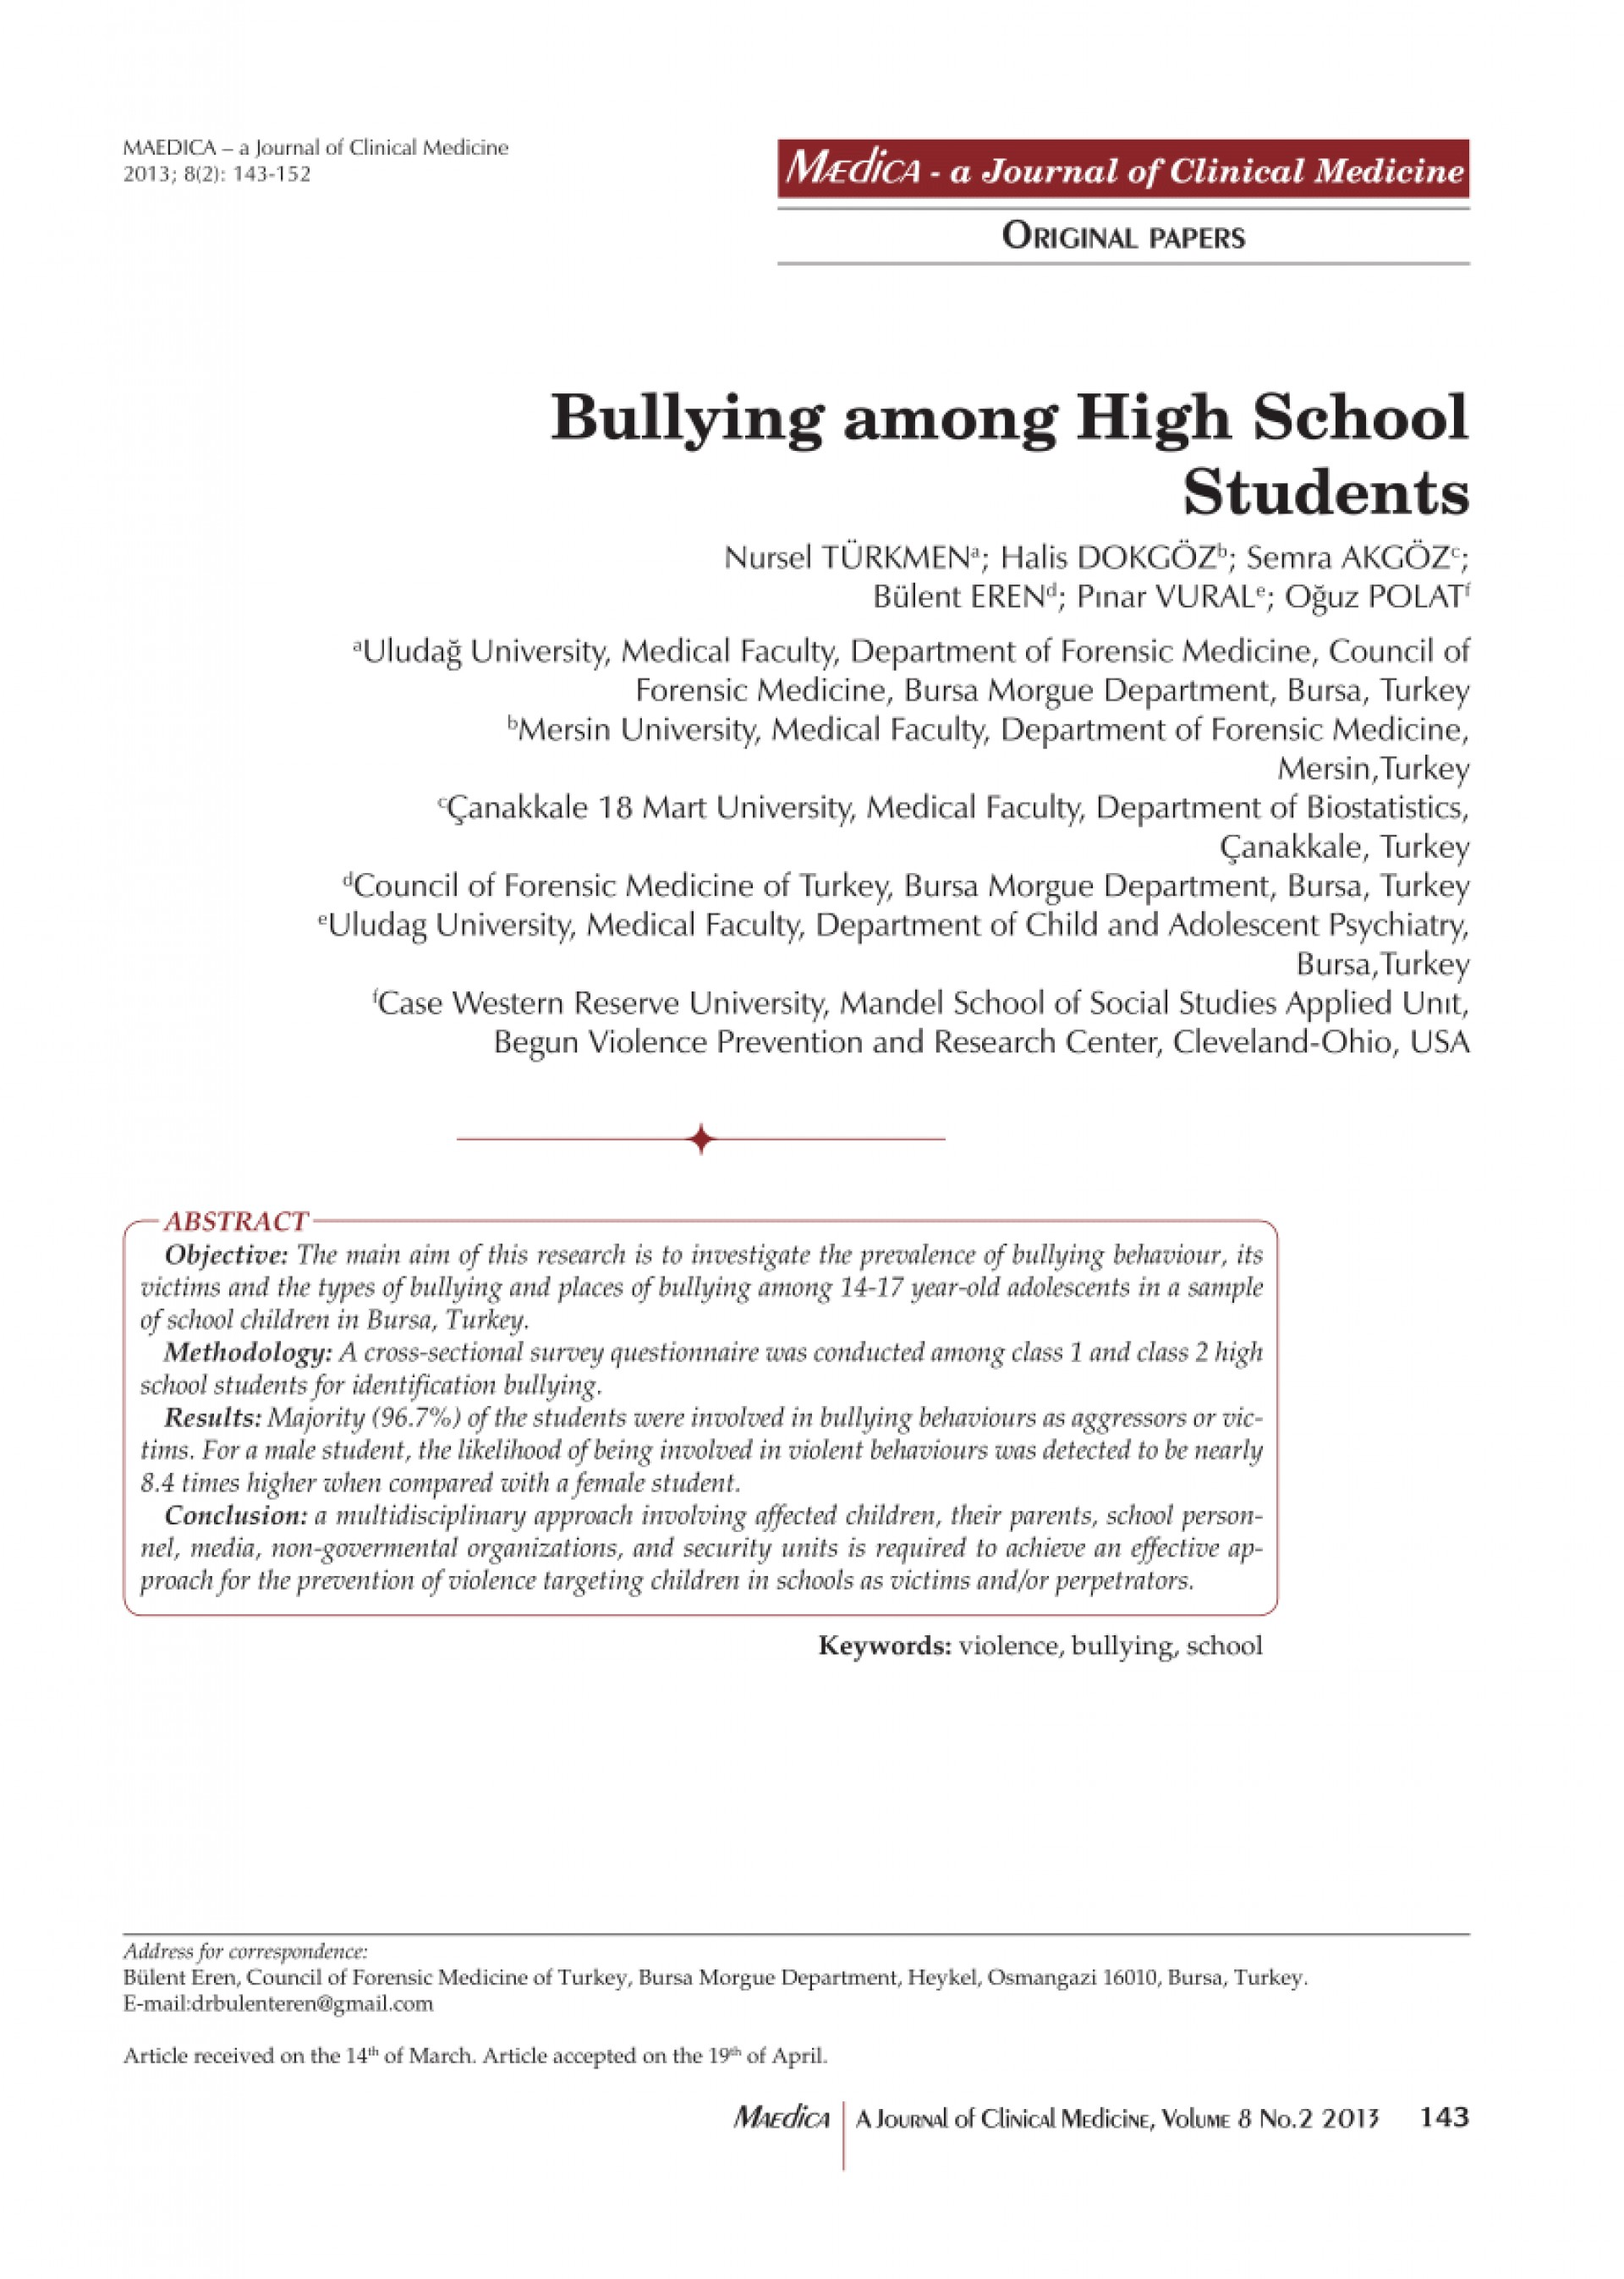 001 Research Paper Largepreview Bullying Example Beautiful Pdf 1920